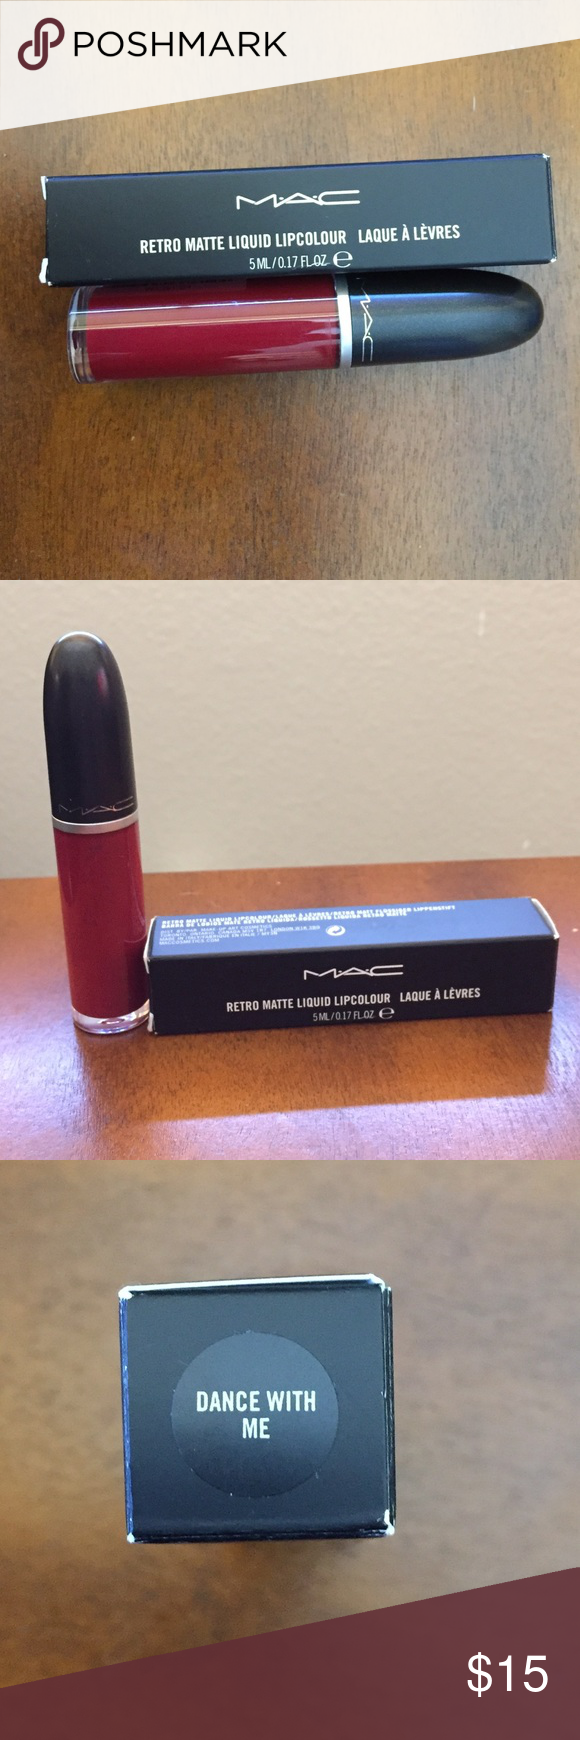 MAC Retro Matte Liquid LipColour Never used or opened. Liquid lip stain. Color: Dance With Me (Deep Cranberry Red). MAC Cosmetics Makeup Lipstick